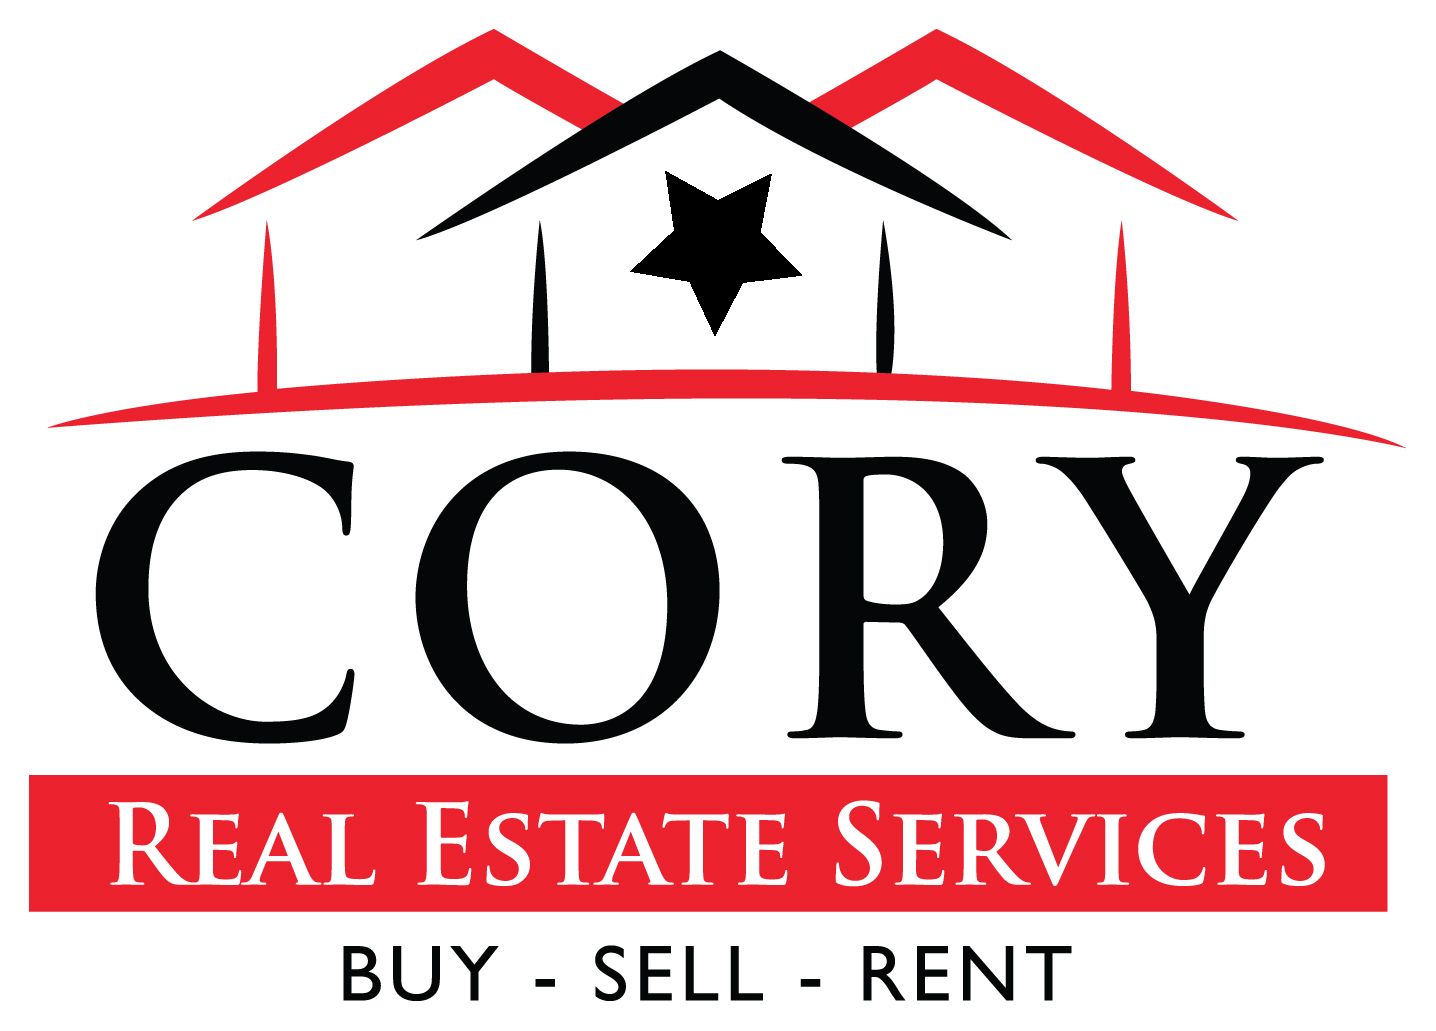 Cory Real Estate Services logo